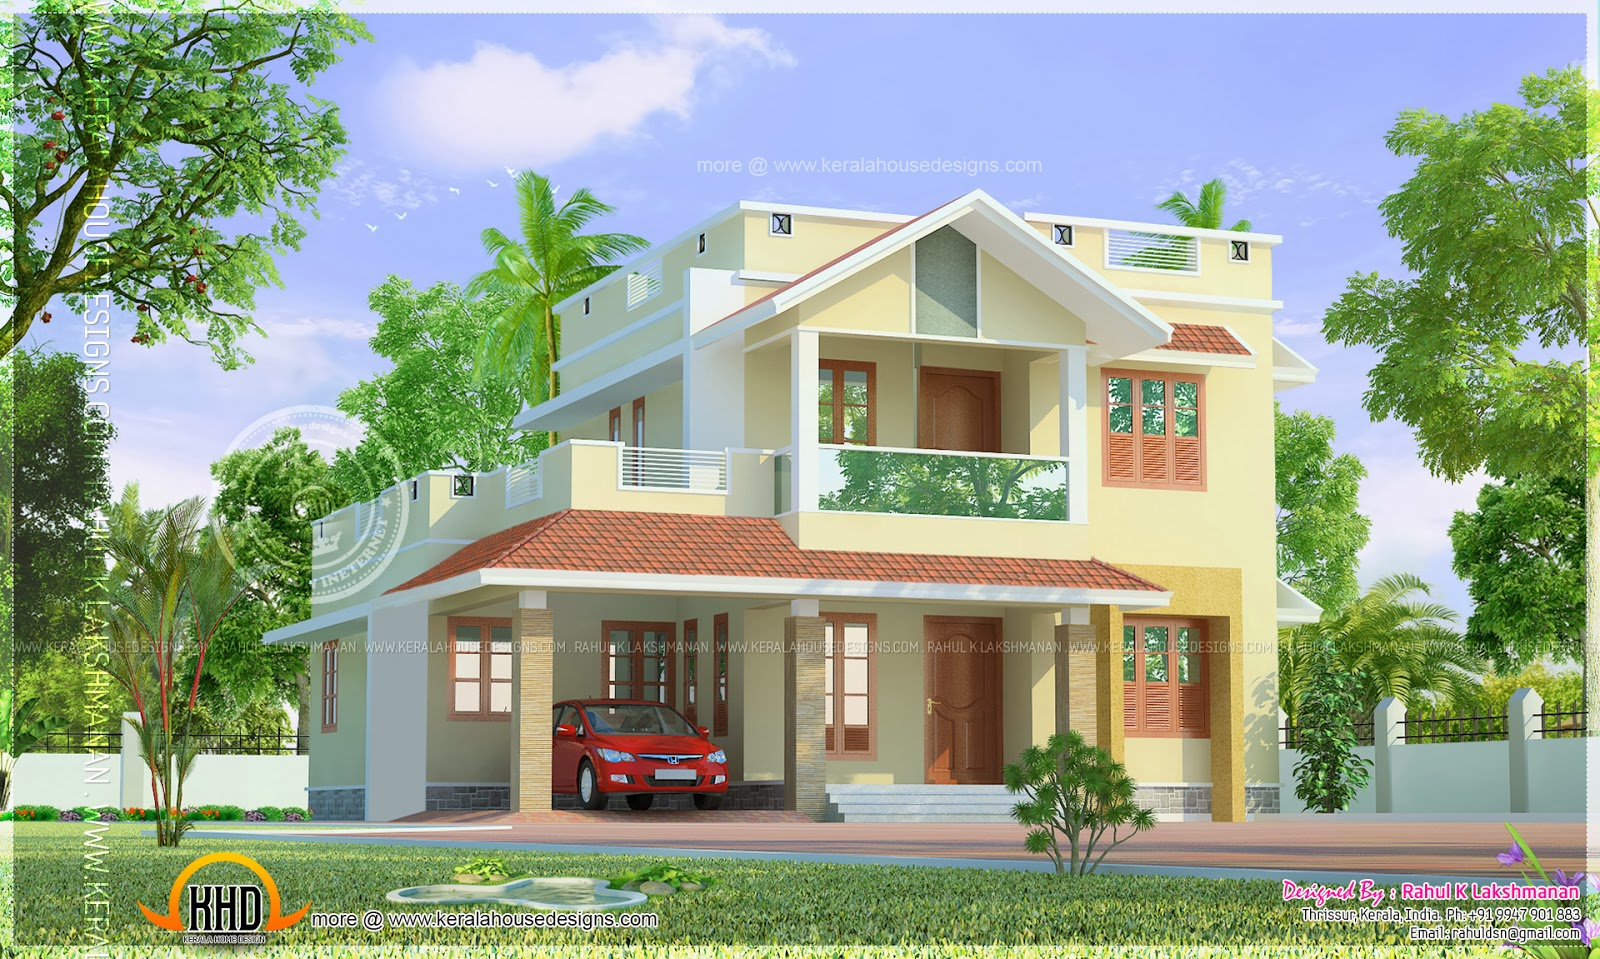 Cute little two storied home design kerala home design for Cute house plans